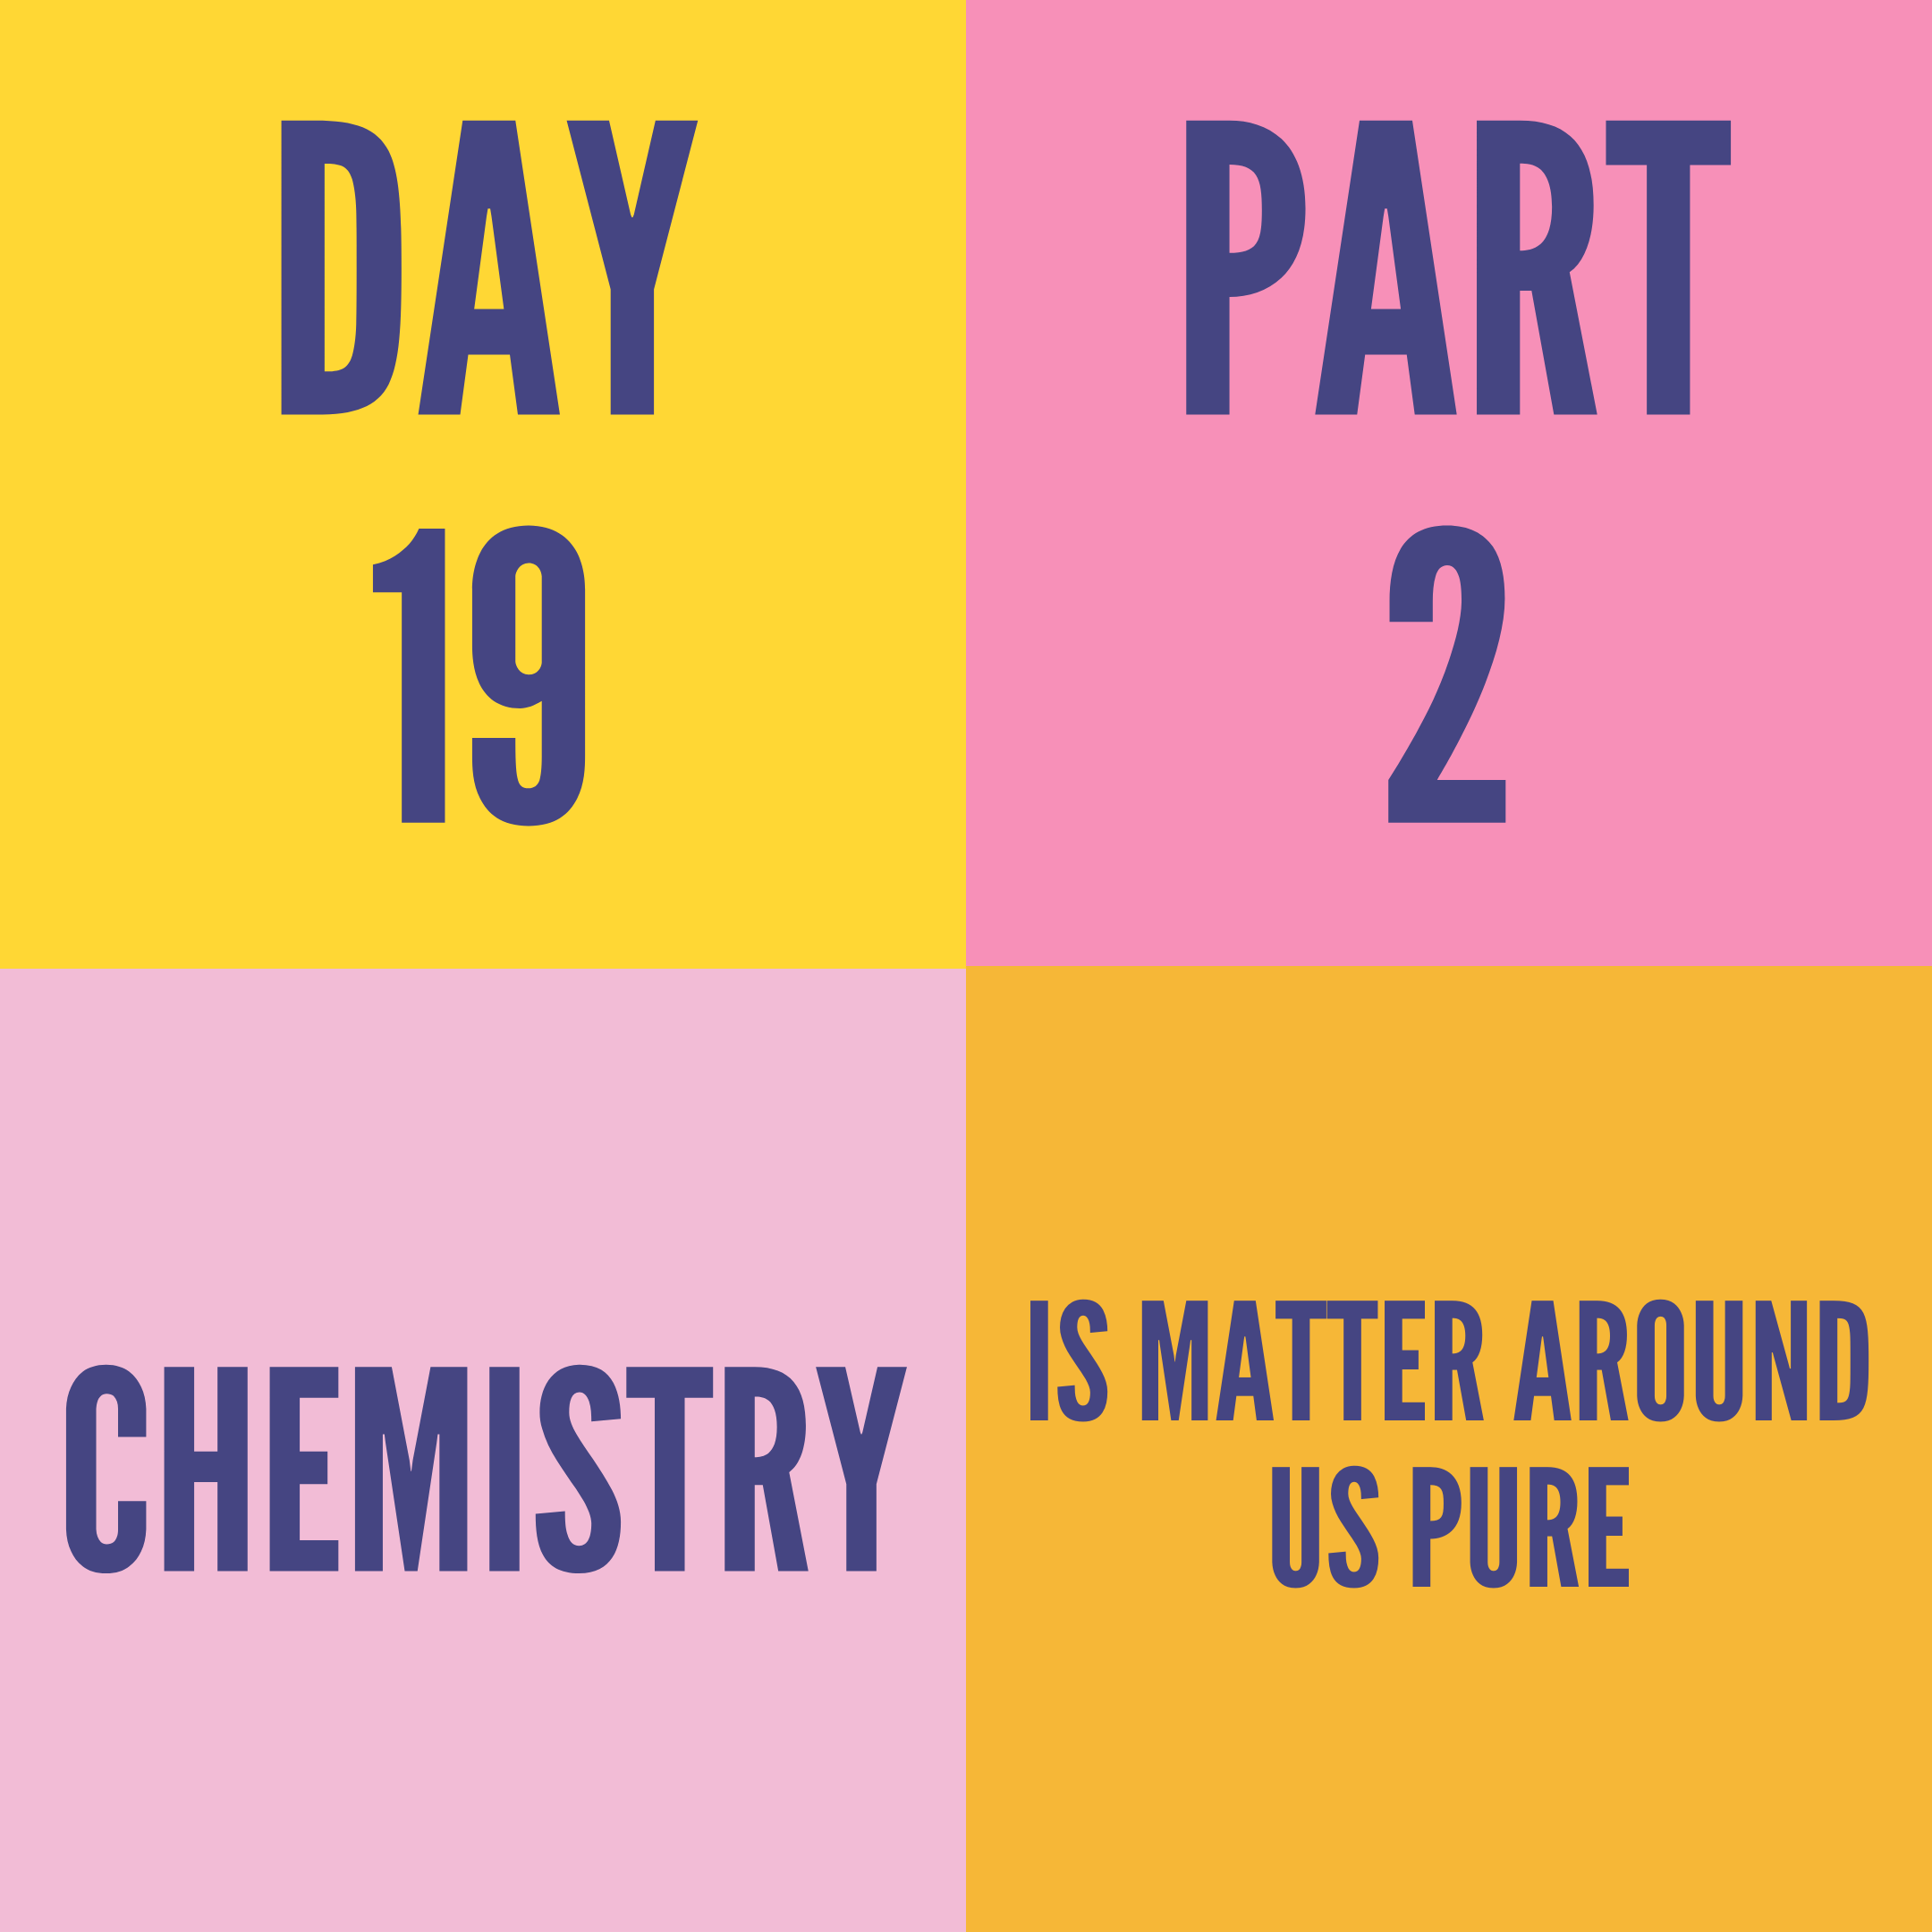 DAY-19 PART-2 IS MATTER AROUND US PURE